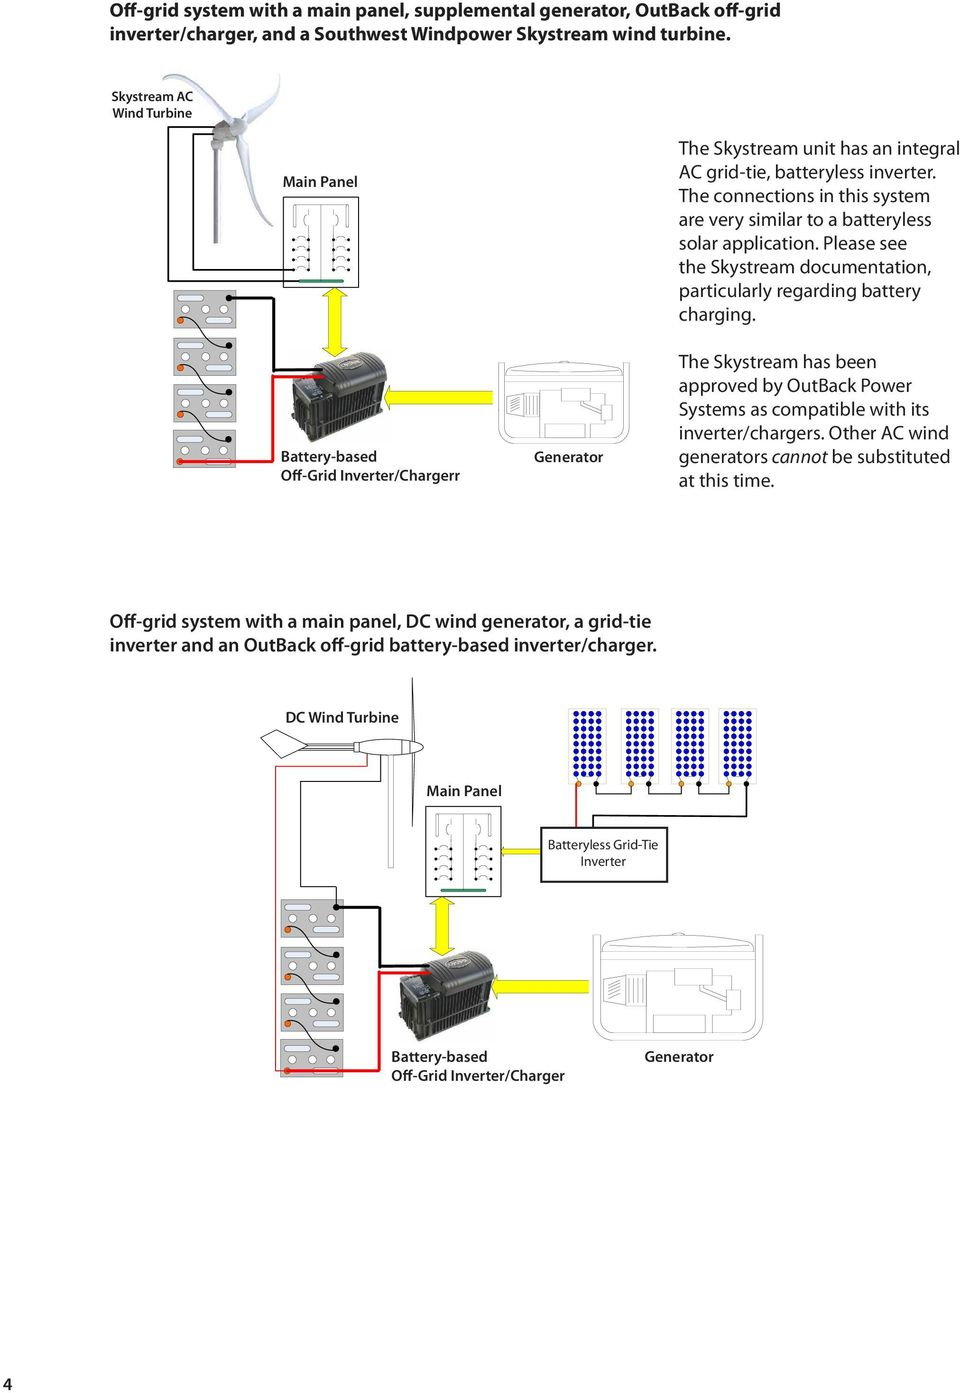 Ac Coupling In Renewable Energy Systems Pdf Charger Further Off Grid Solar Power System Also Street Light Circuit The Connections This Are Very Similar To A Batteryless Application Please See